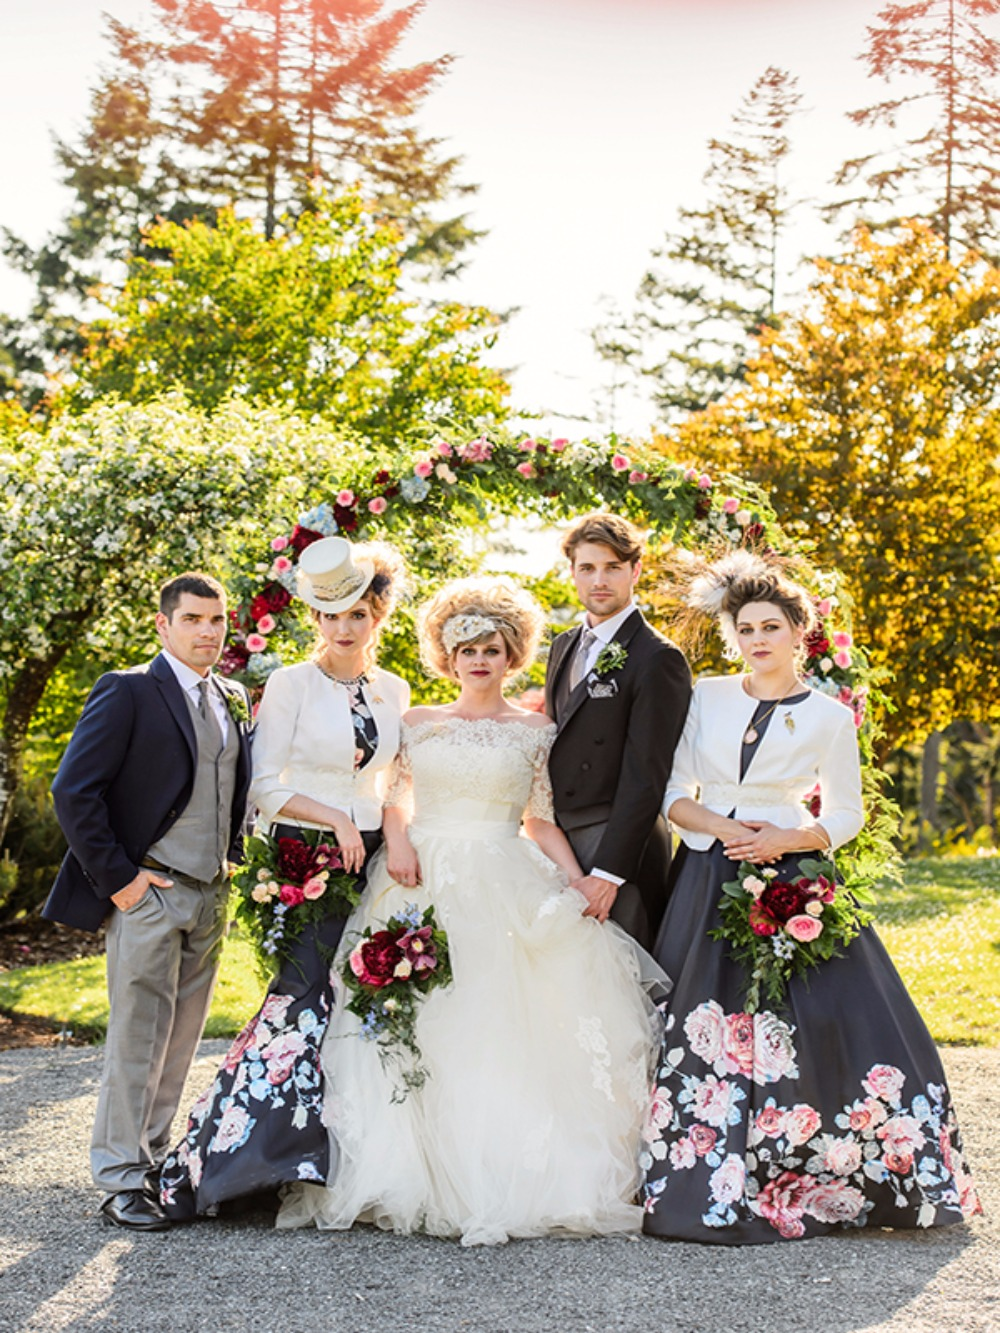 3_a-colorful-over-the-top-wedding-inspired-by-marie-antoinette.jpg